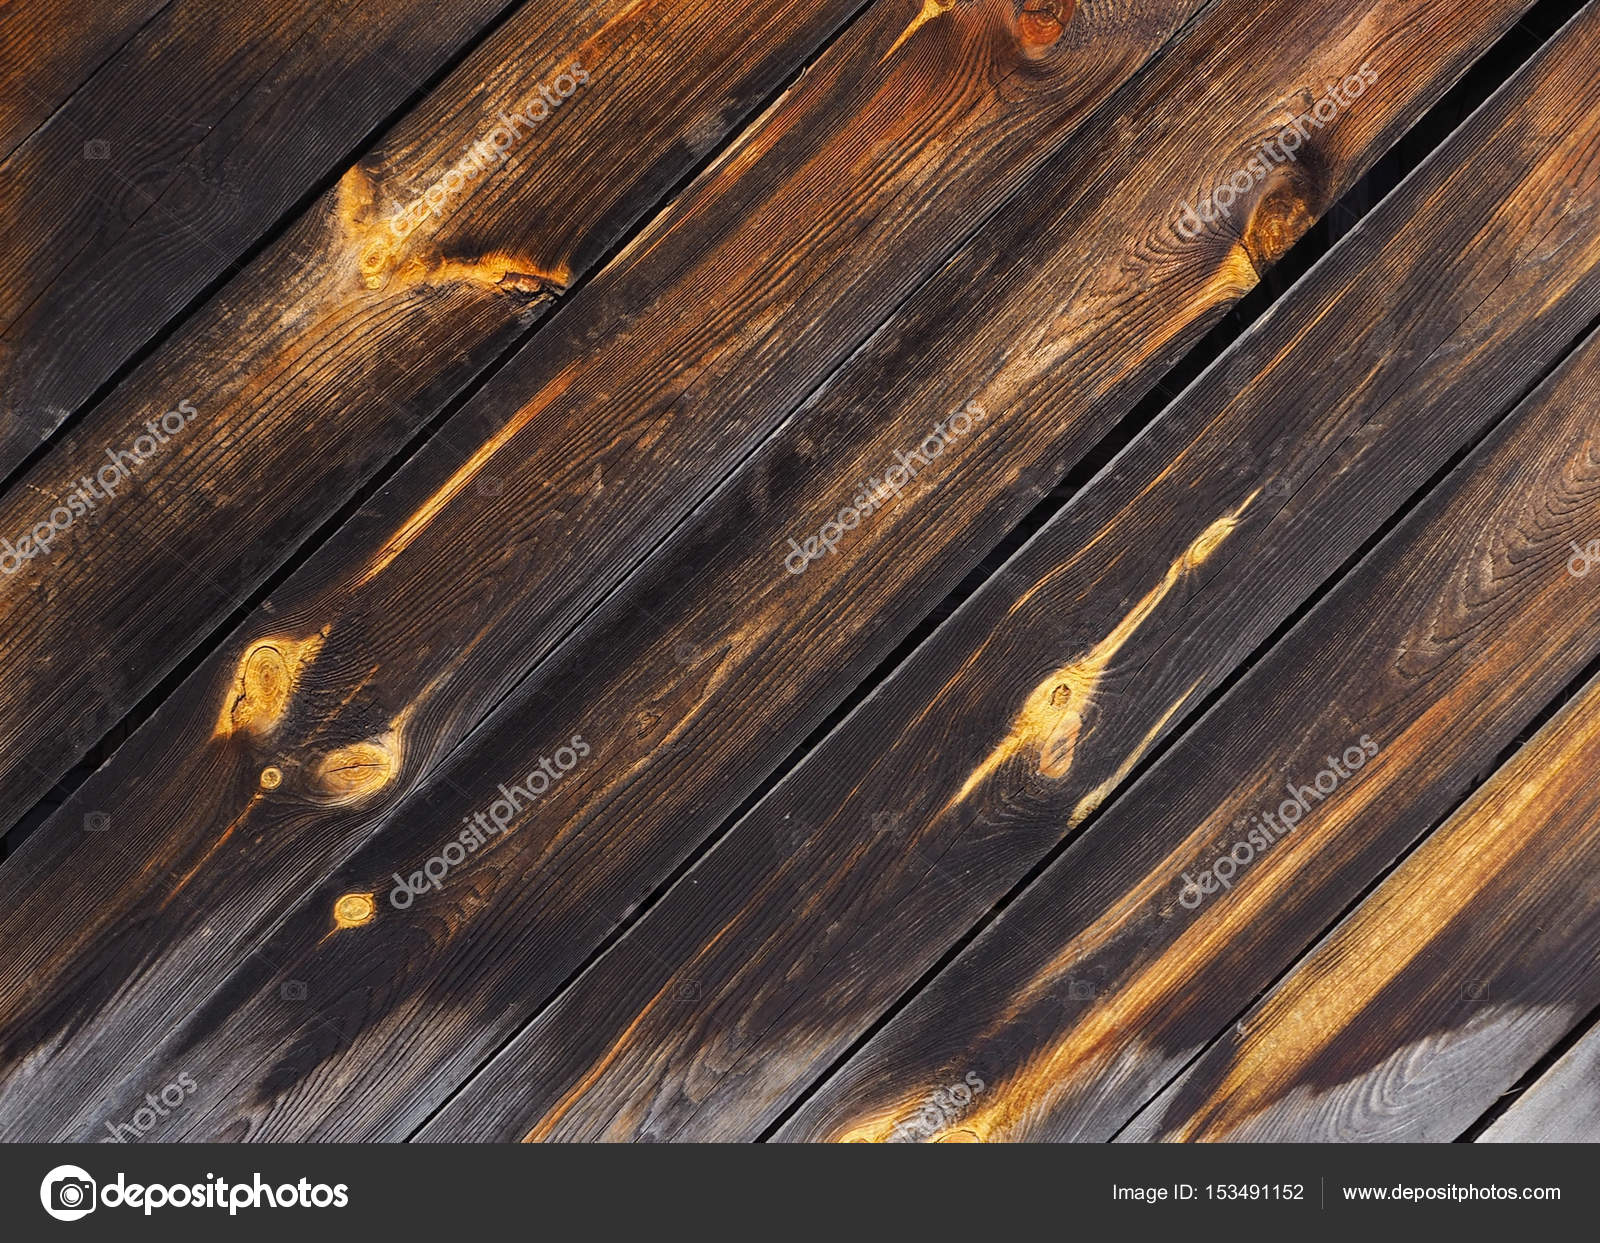 Dark Wood Panel Background Old Vintage Planked Wooden Texture Boards Empty Clear For Flat Lay Photo Design By Svsunny